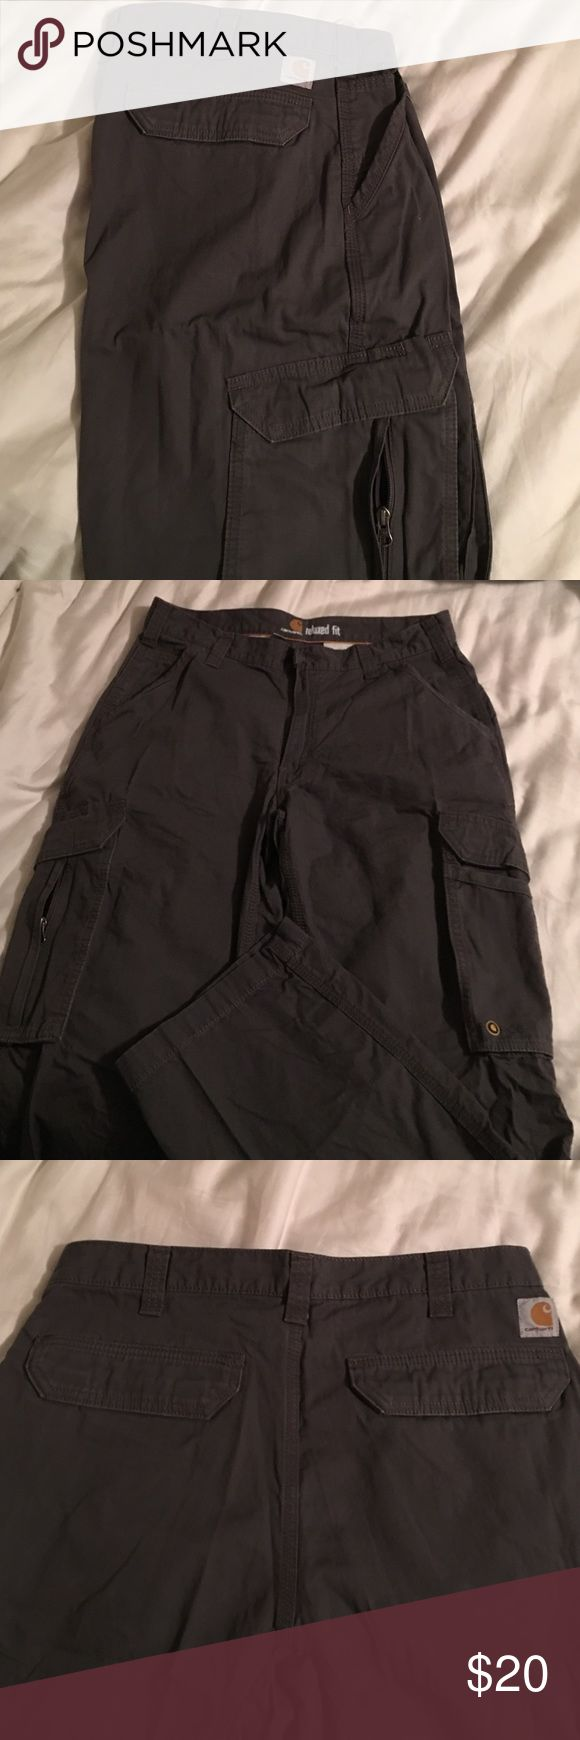 Carhartt Cargo pant- Relaxed Fit Gray Carhartt Cargo style pant. EXCELLENT CONDITION!!! Carhartt Pants Cargo